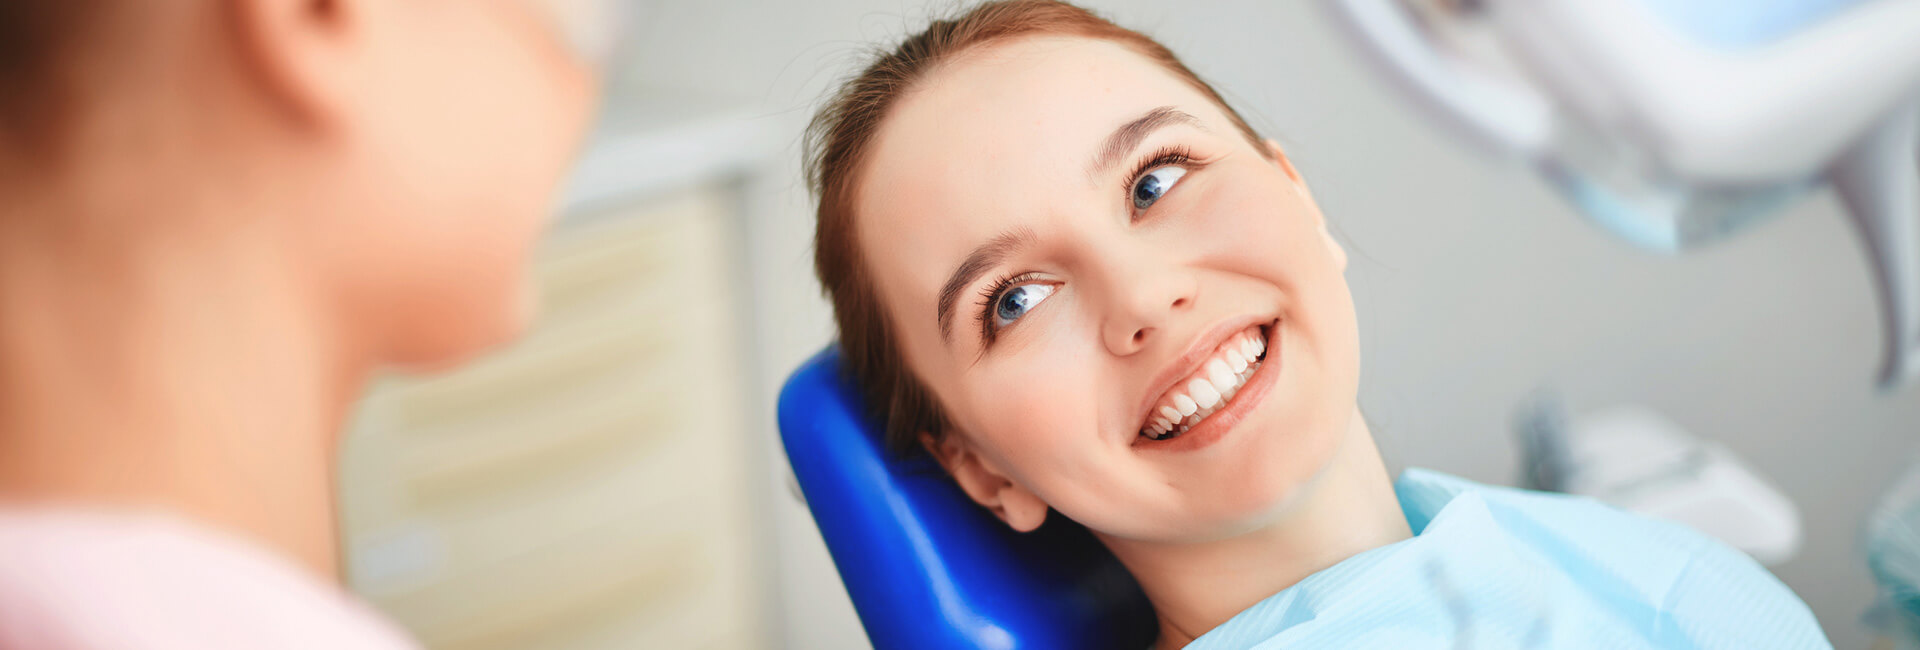 Smiling female patient seated on dental chair